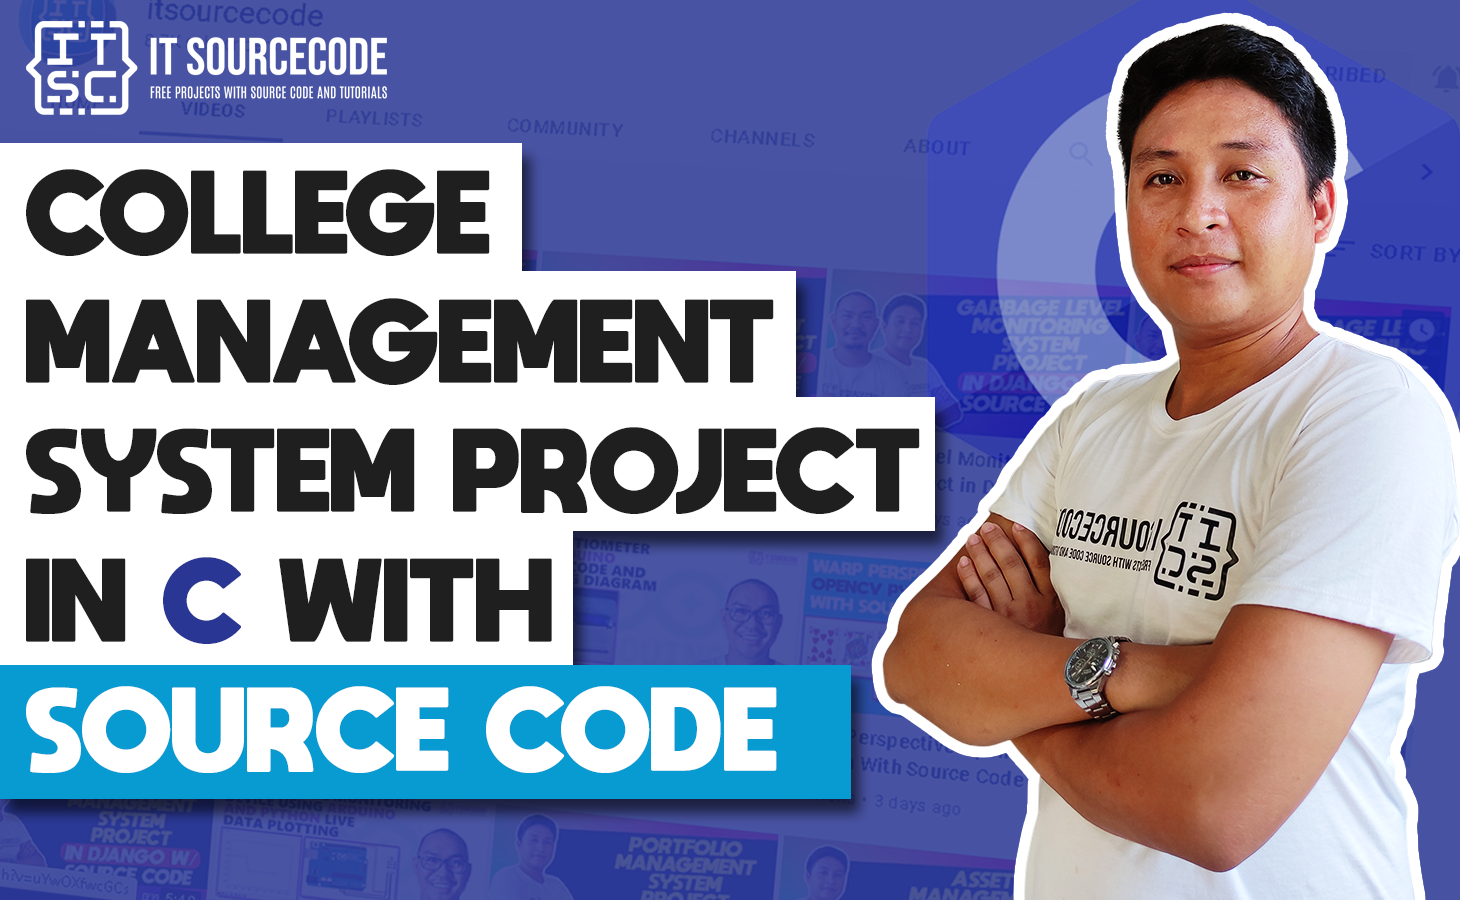 College management system project in C Language with Source code